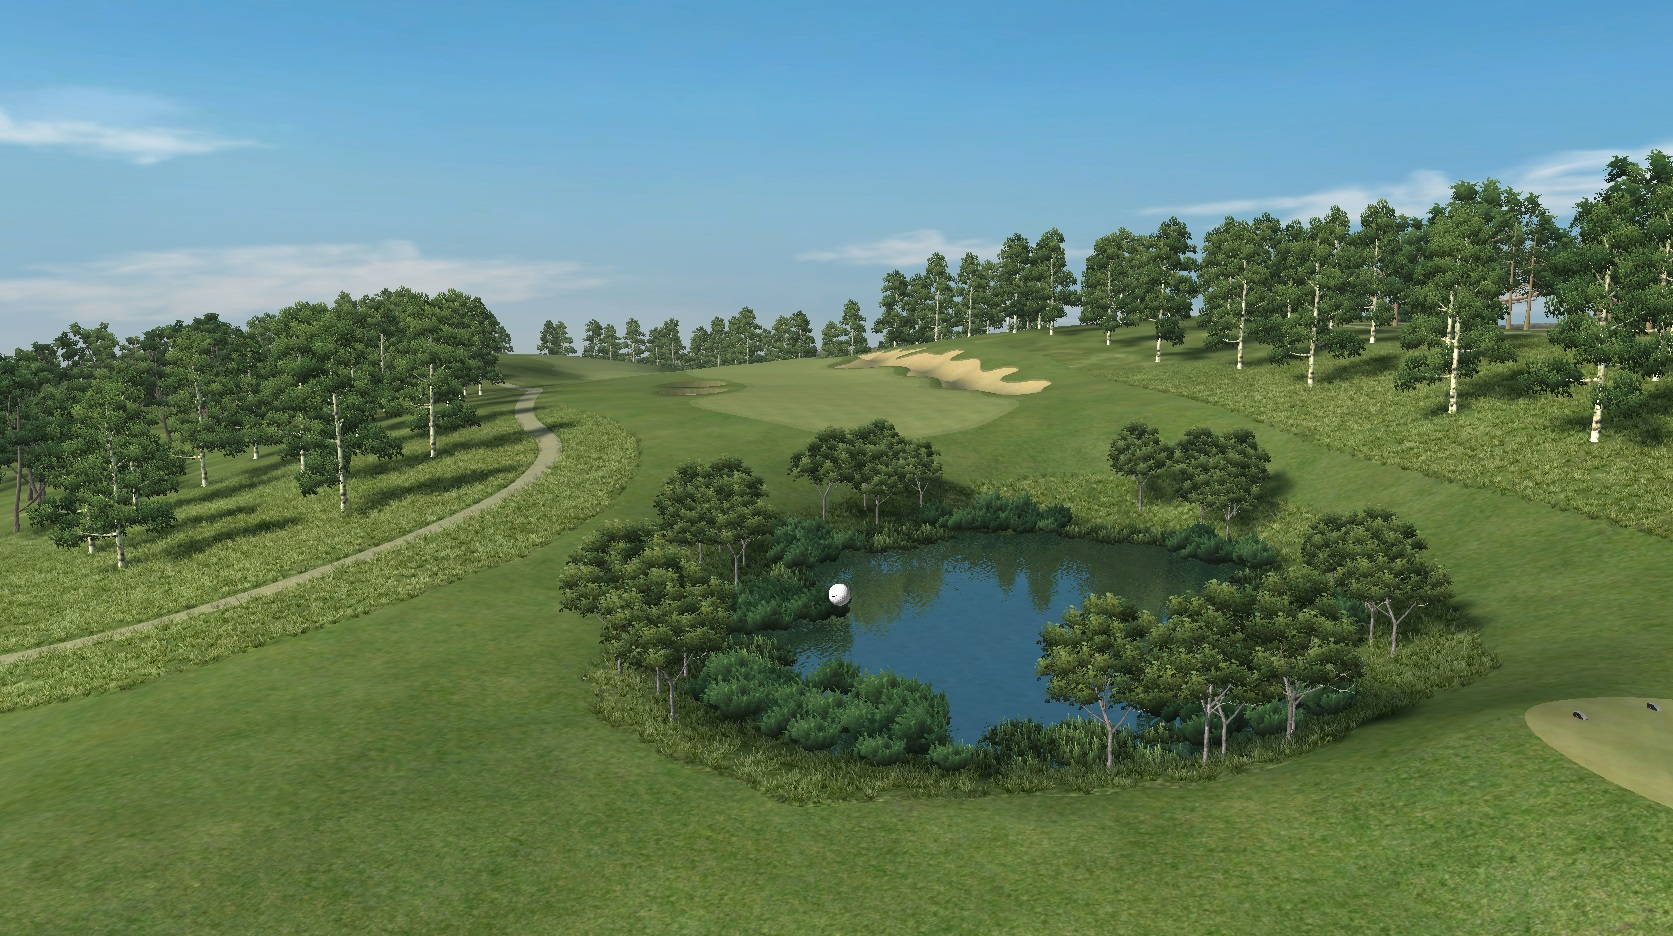 Picture of Abbotsbury Golf Club - click to view original size